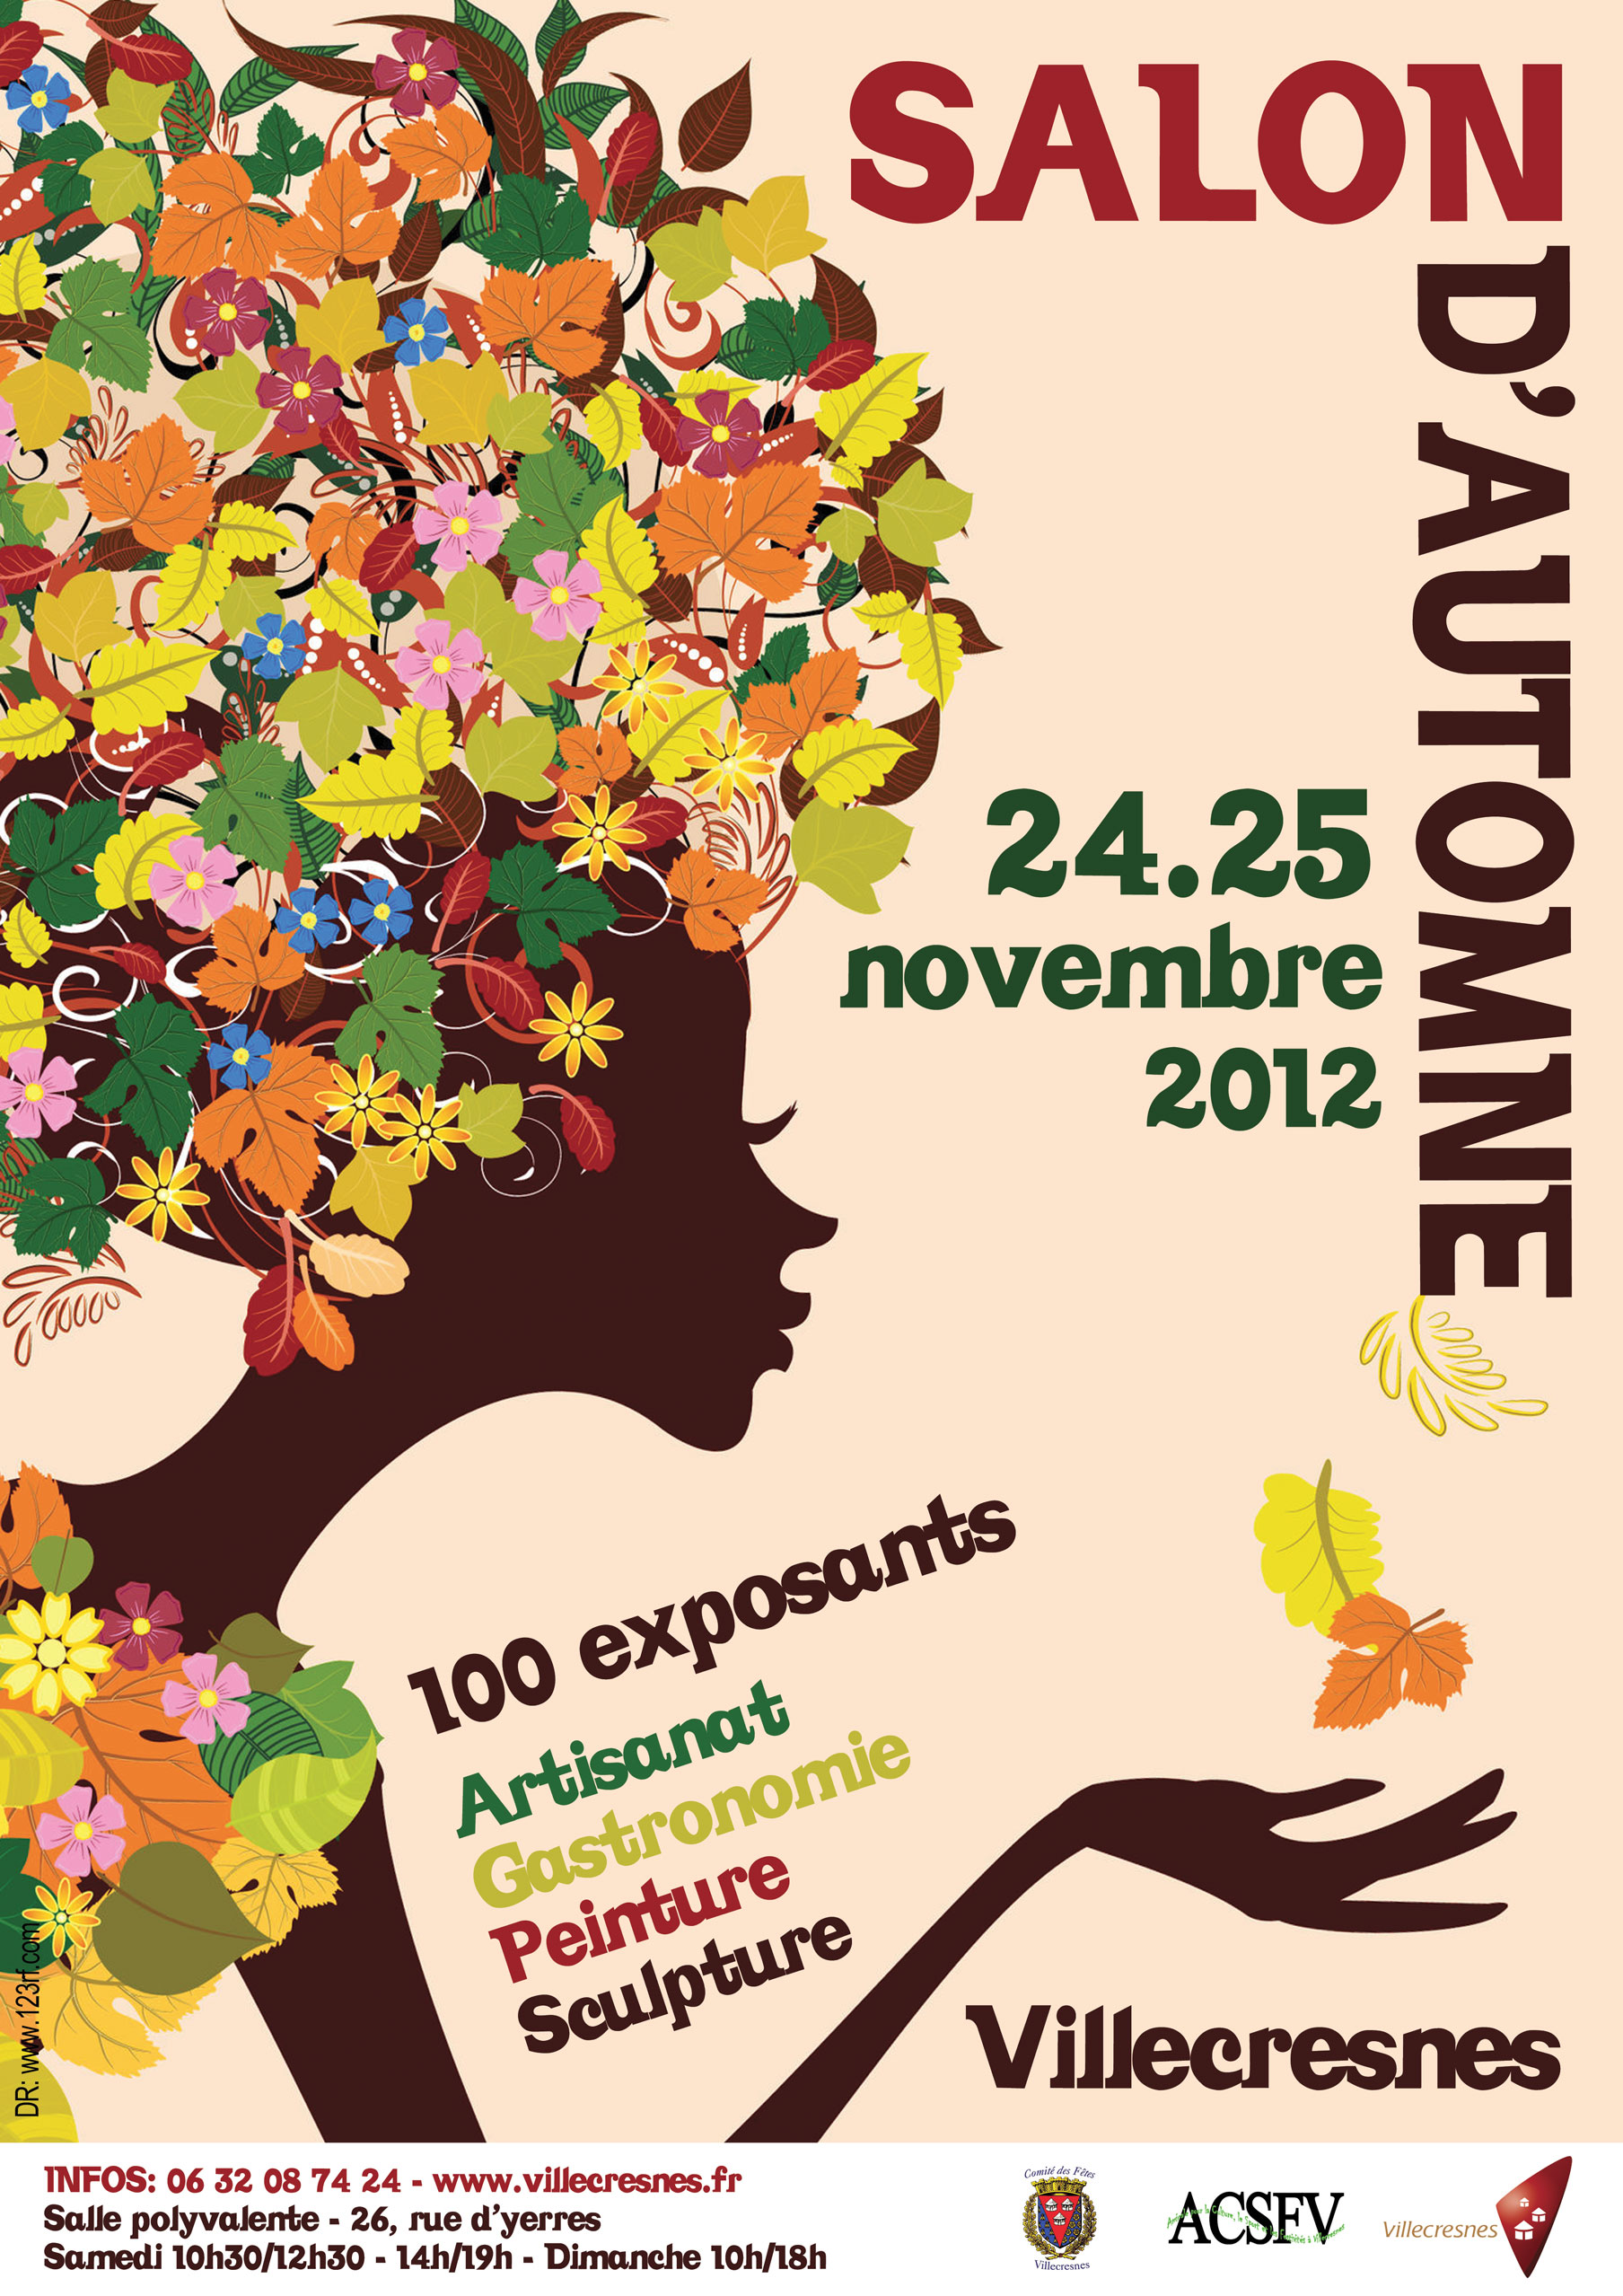 Salon d 39 automne ville de villecresnes for Salon automne